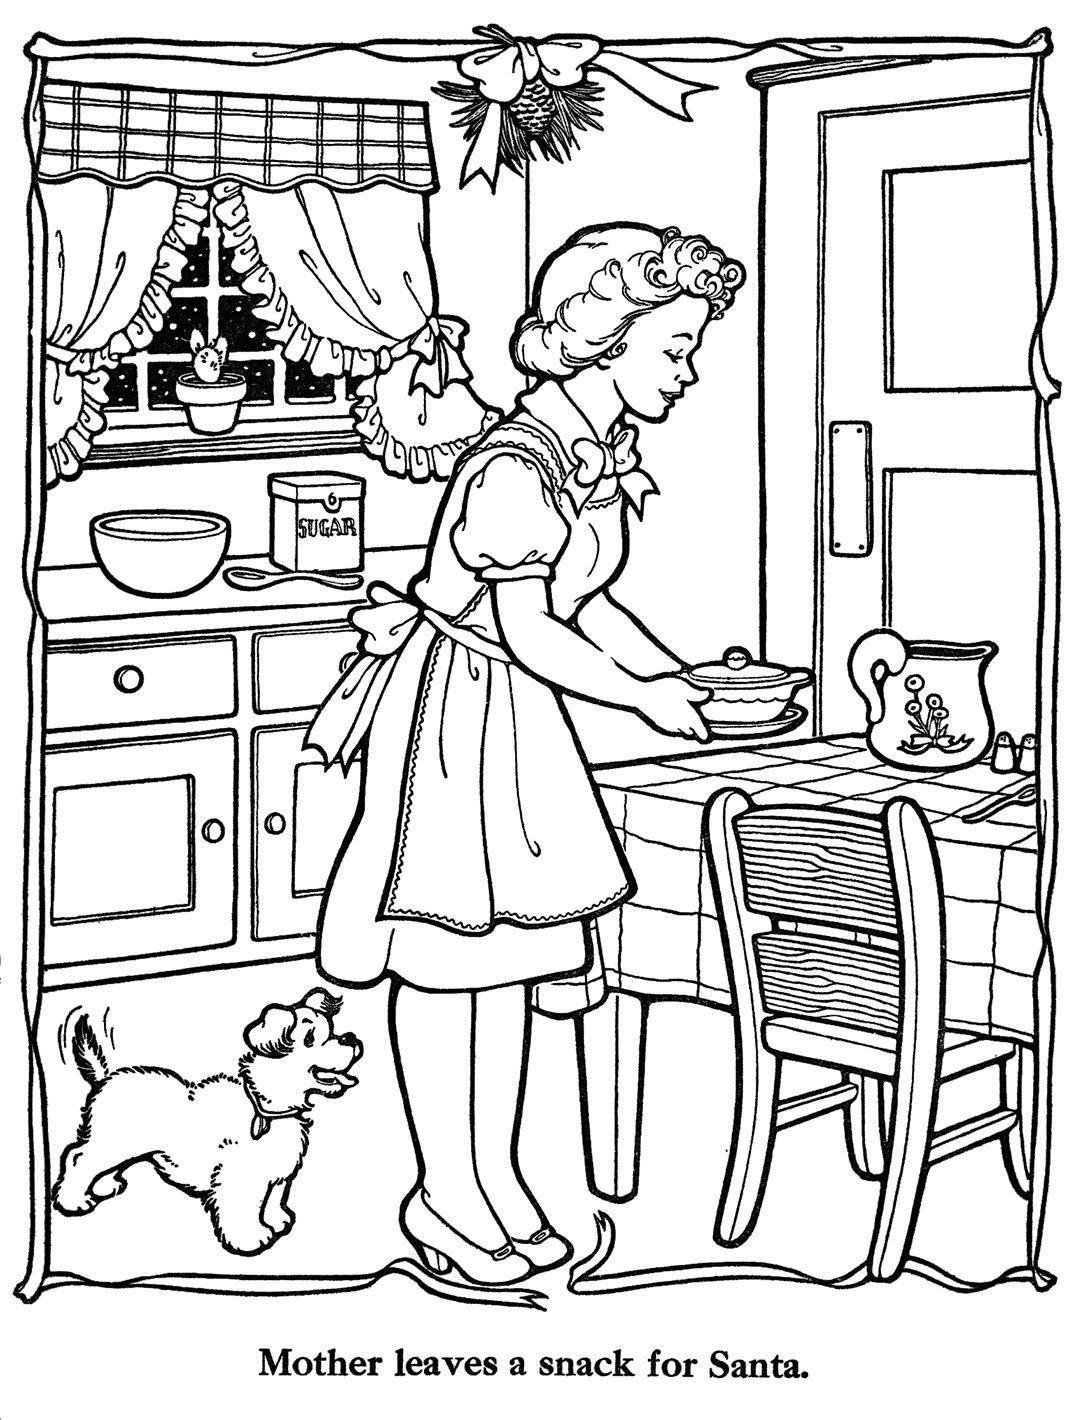 Blog Archive Countdown To Christmas 2 Days Coloring Pages Vintage Coloring Books Christmas Coloring Pages